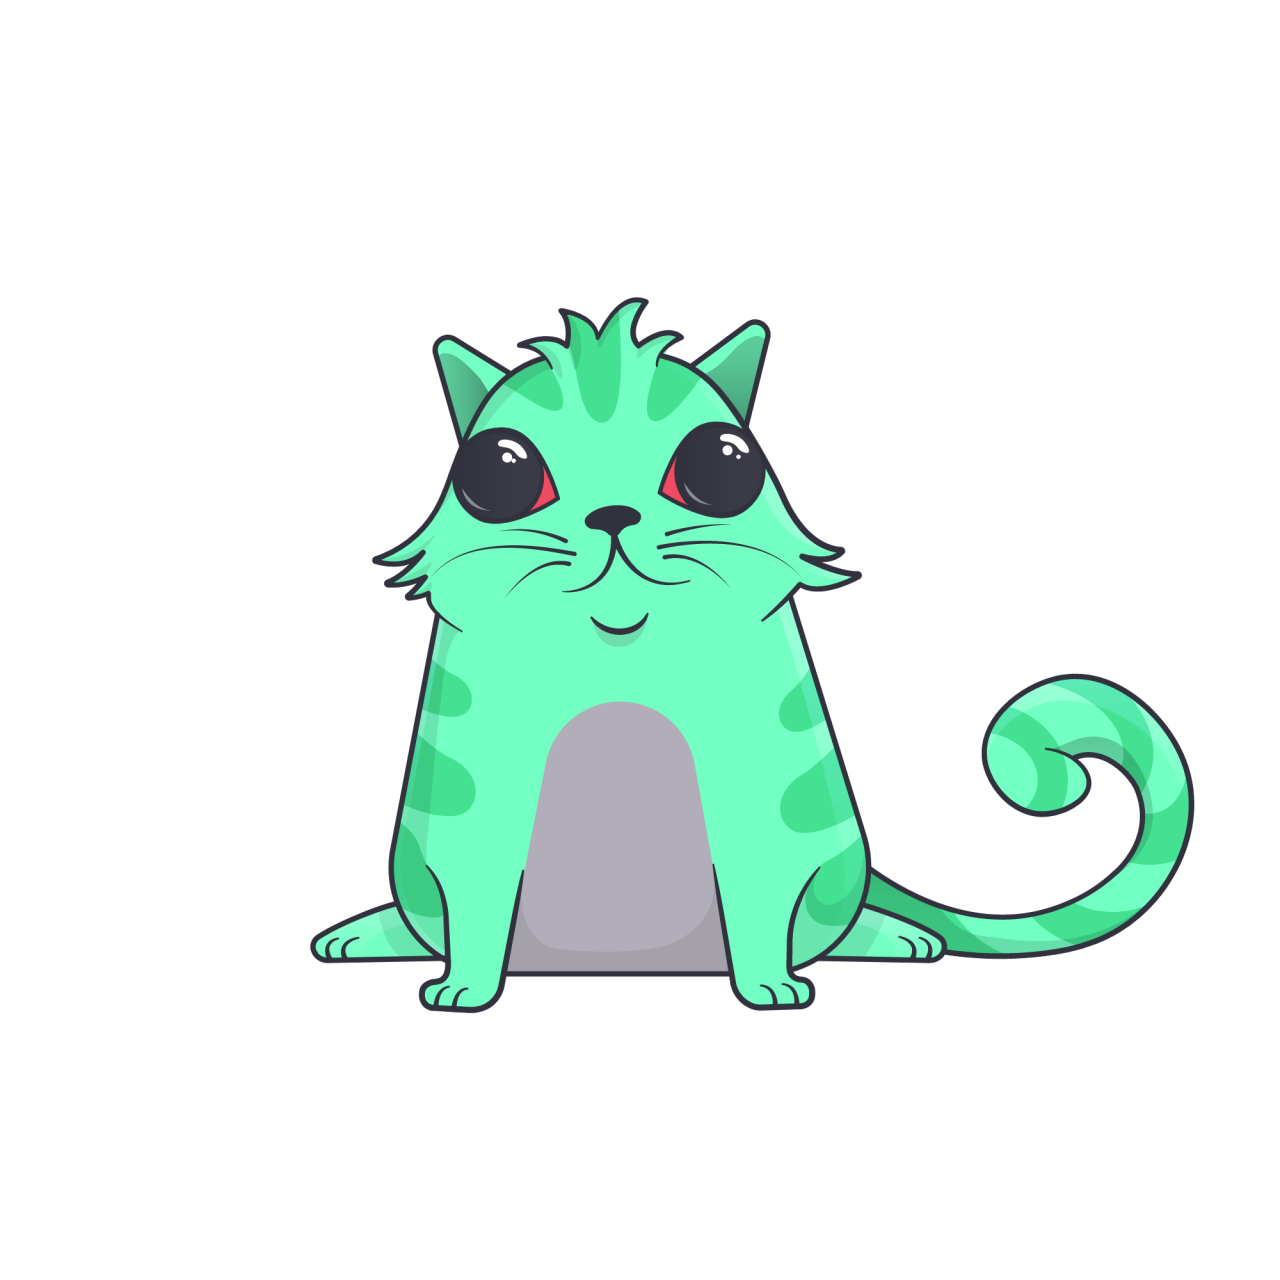 Crypto art: an illustrated colorful cat.